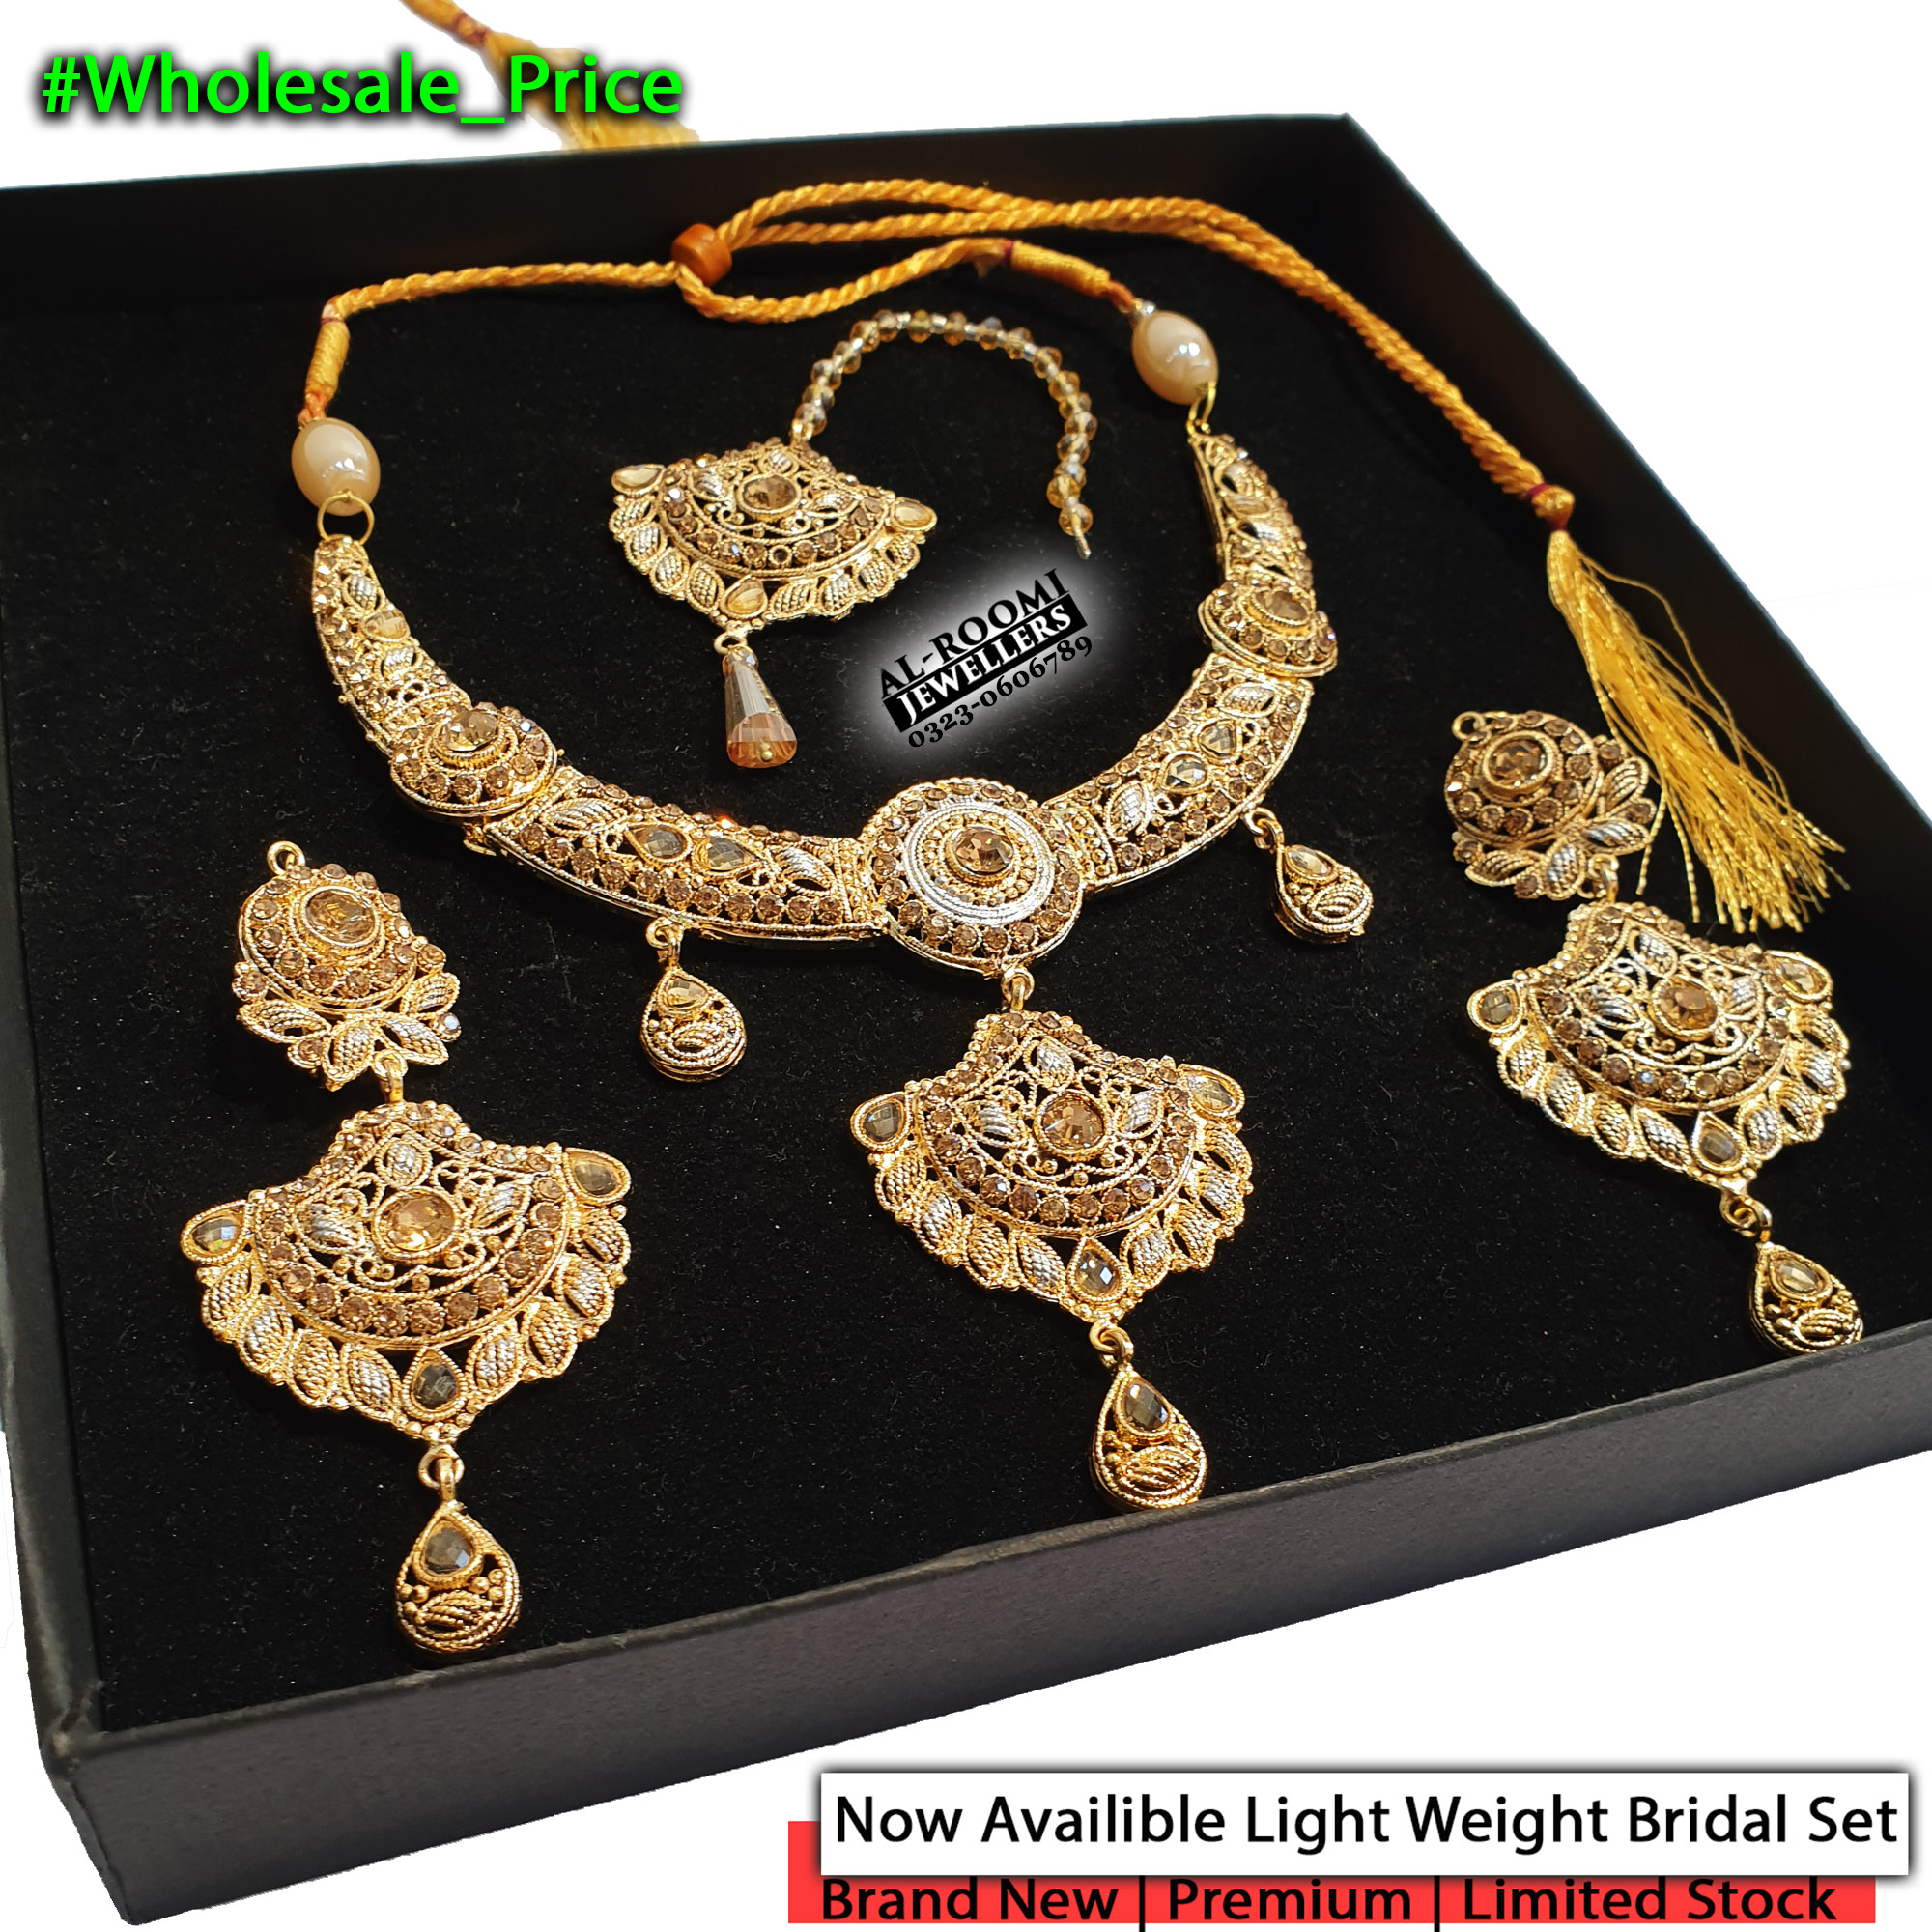 Original Choker Bridal Complete Set Within Wholesale Price for Girls and Women